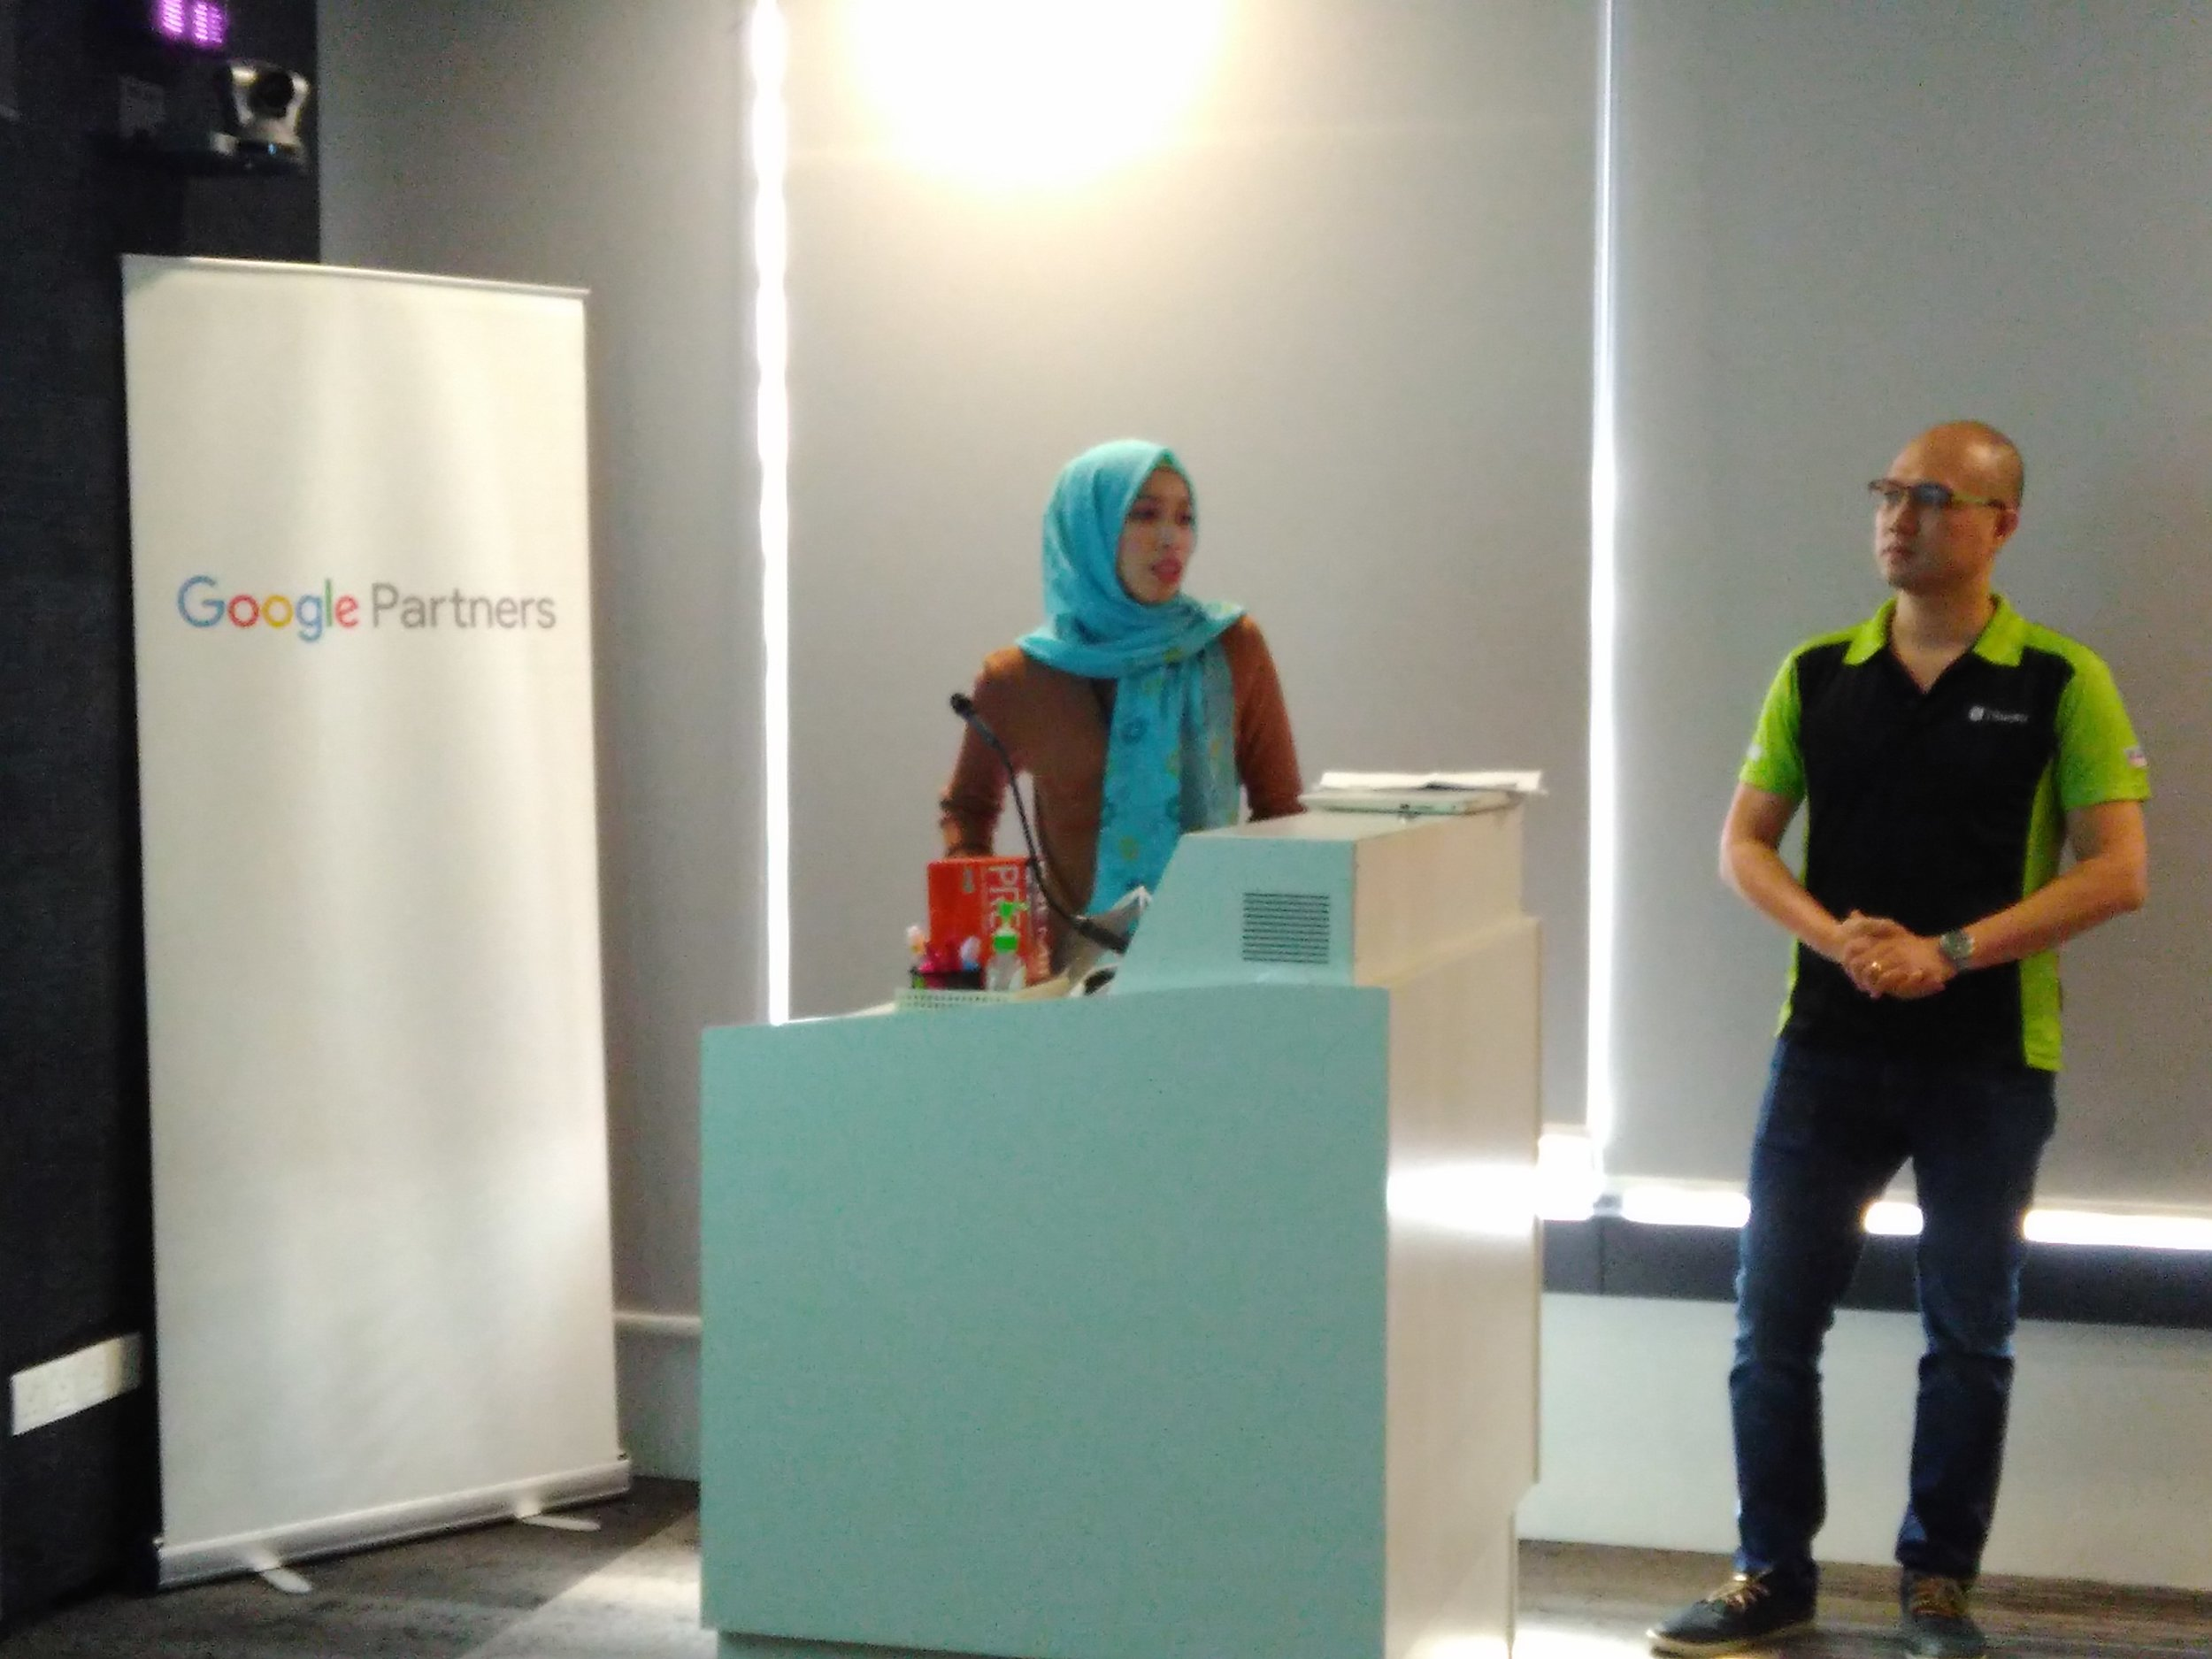 Google Malaysia's Agency Account Strategist, Norra Shamsuddin was also present at the event.